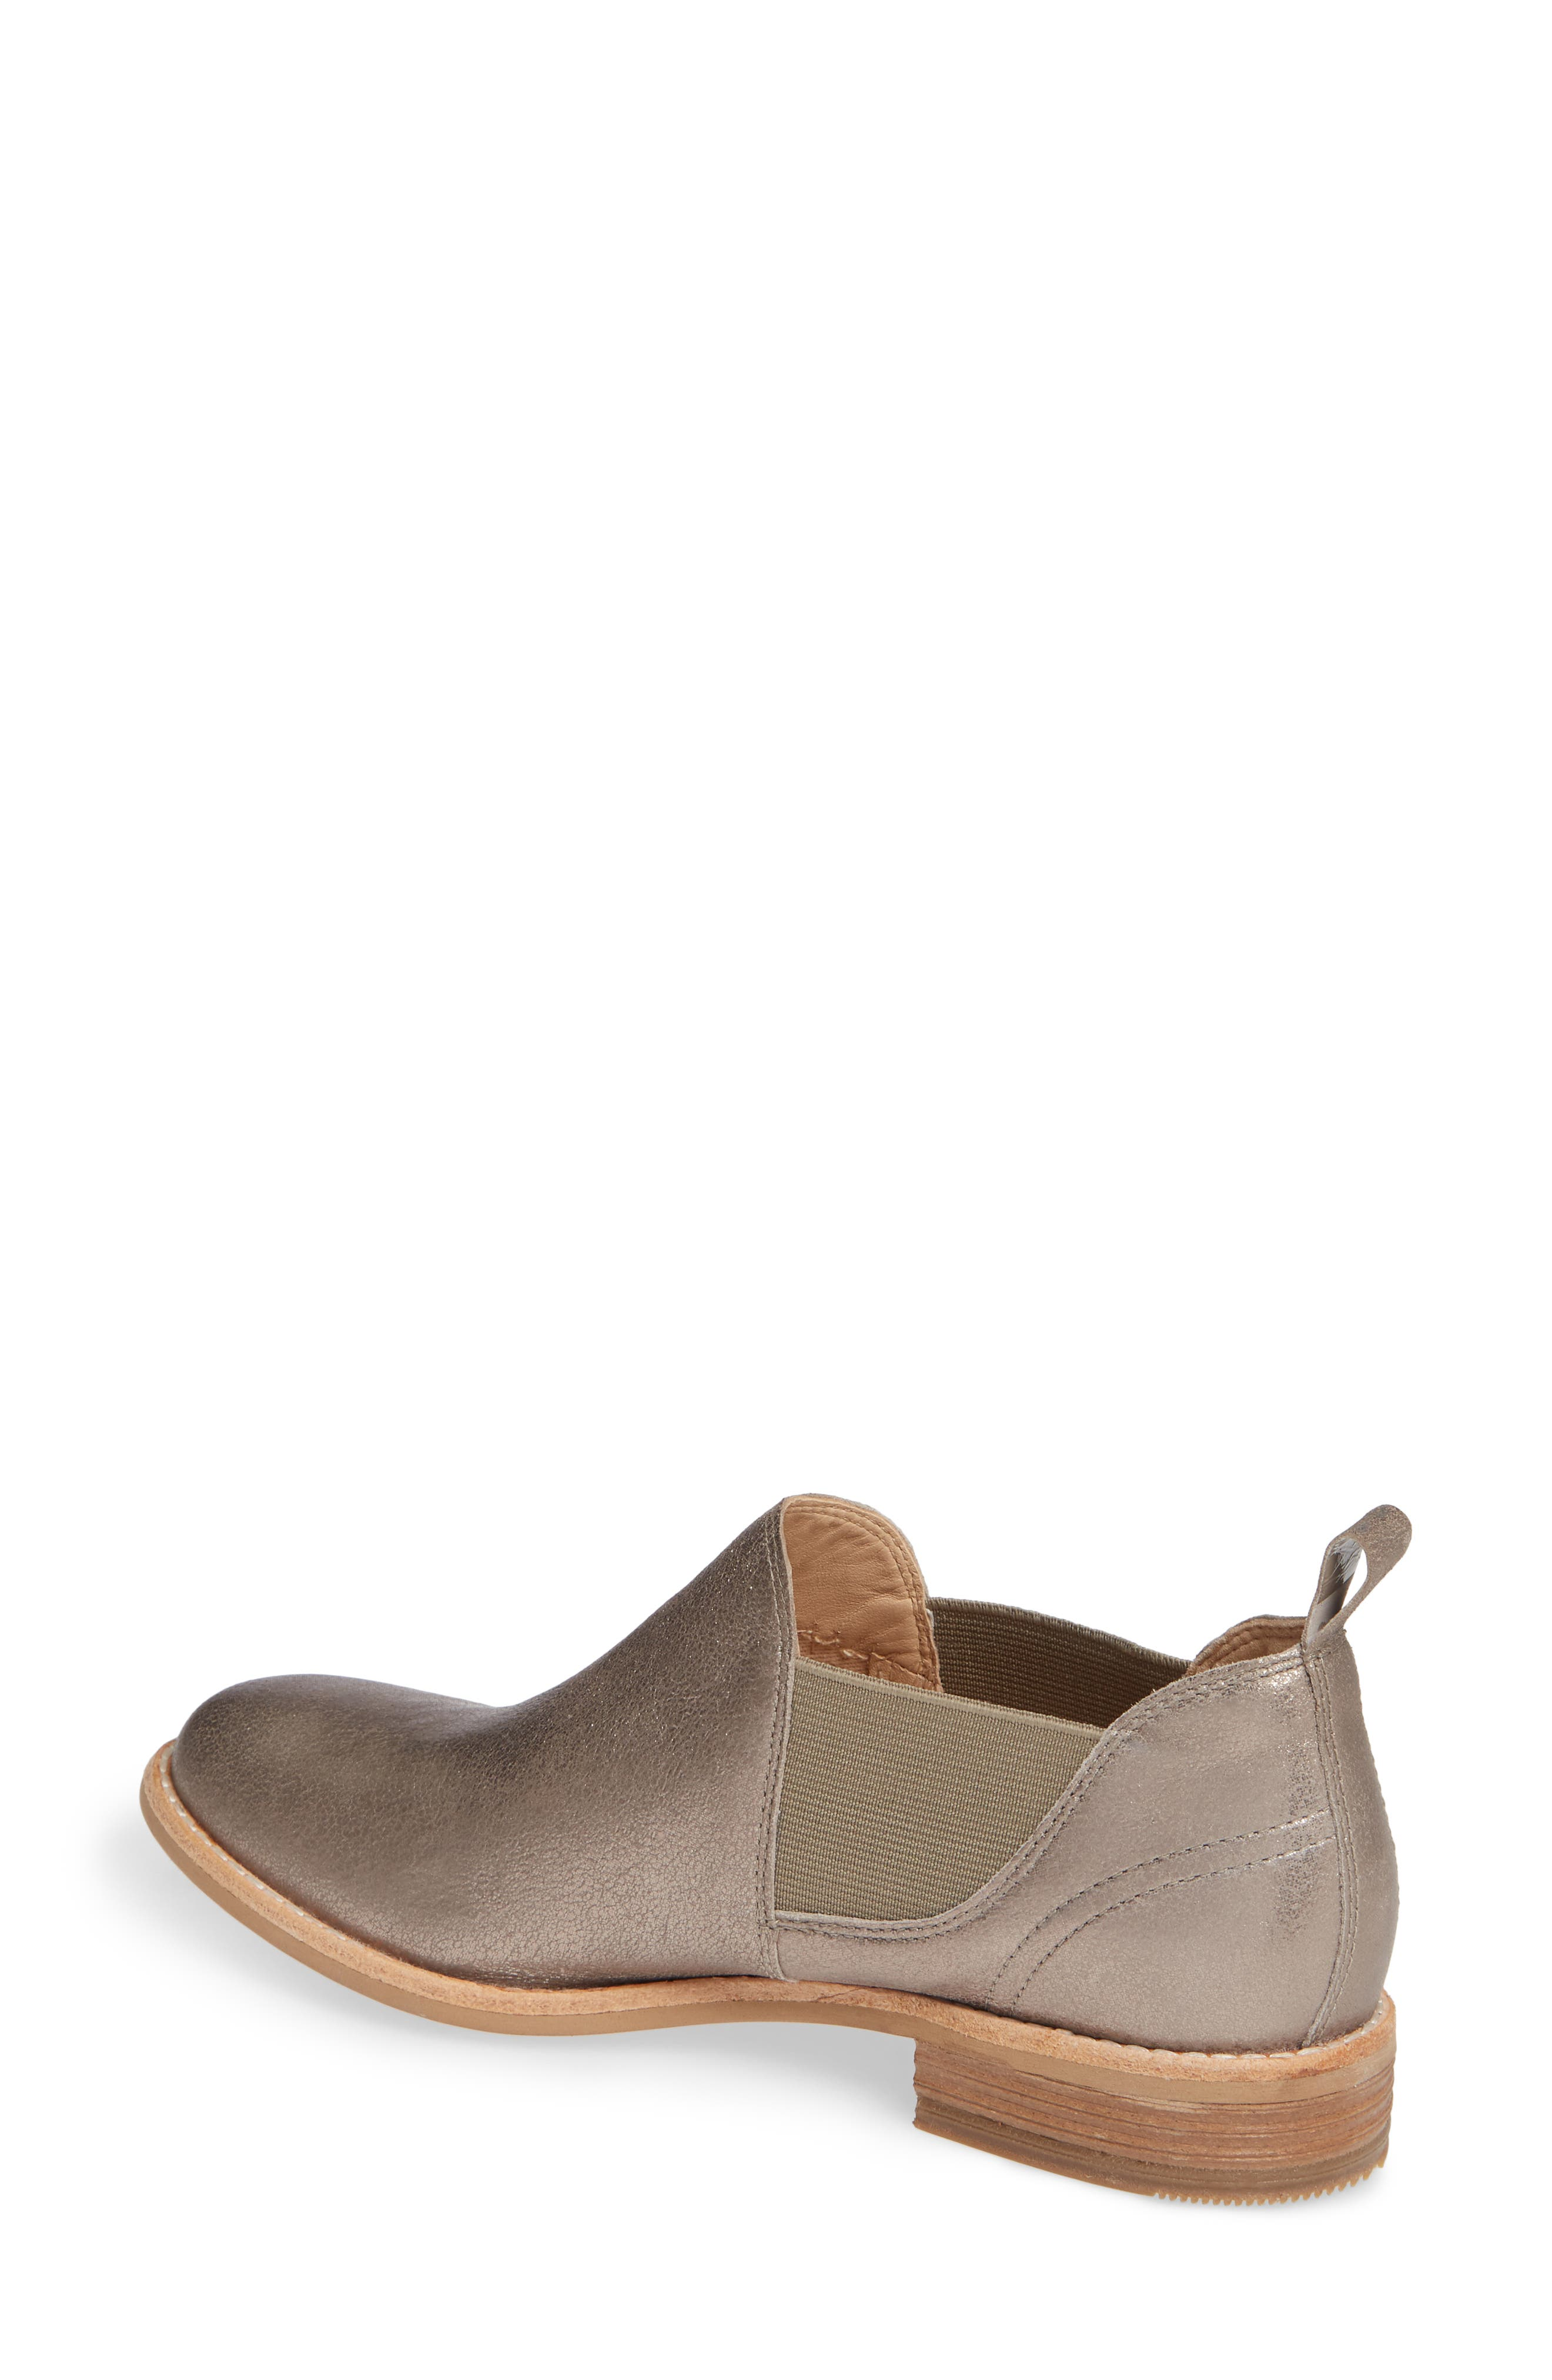 Edenvale Page Bootie,                             Alternate thumbnail 2, color,                             PEWTER SUEDE